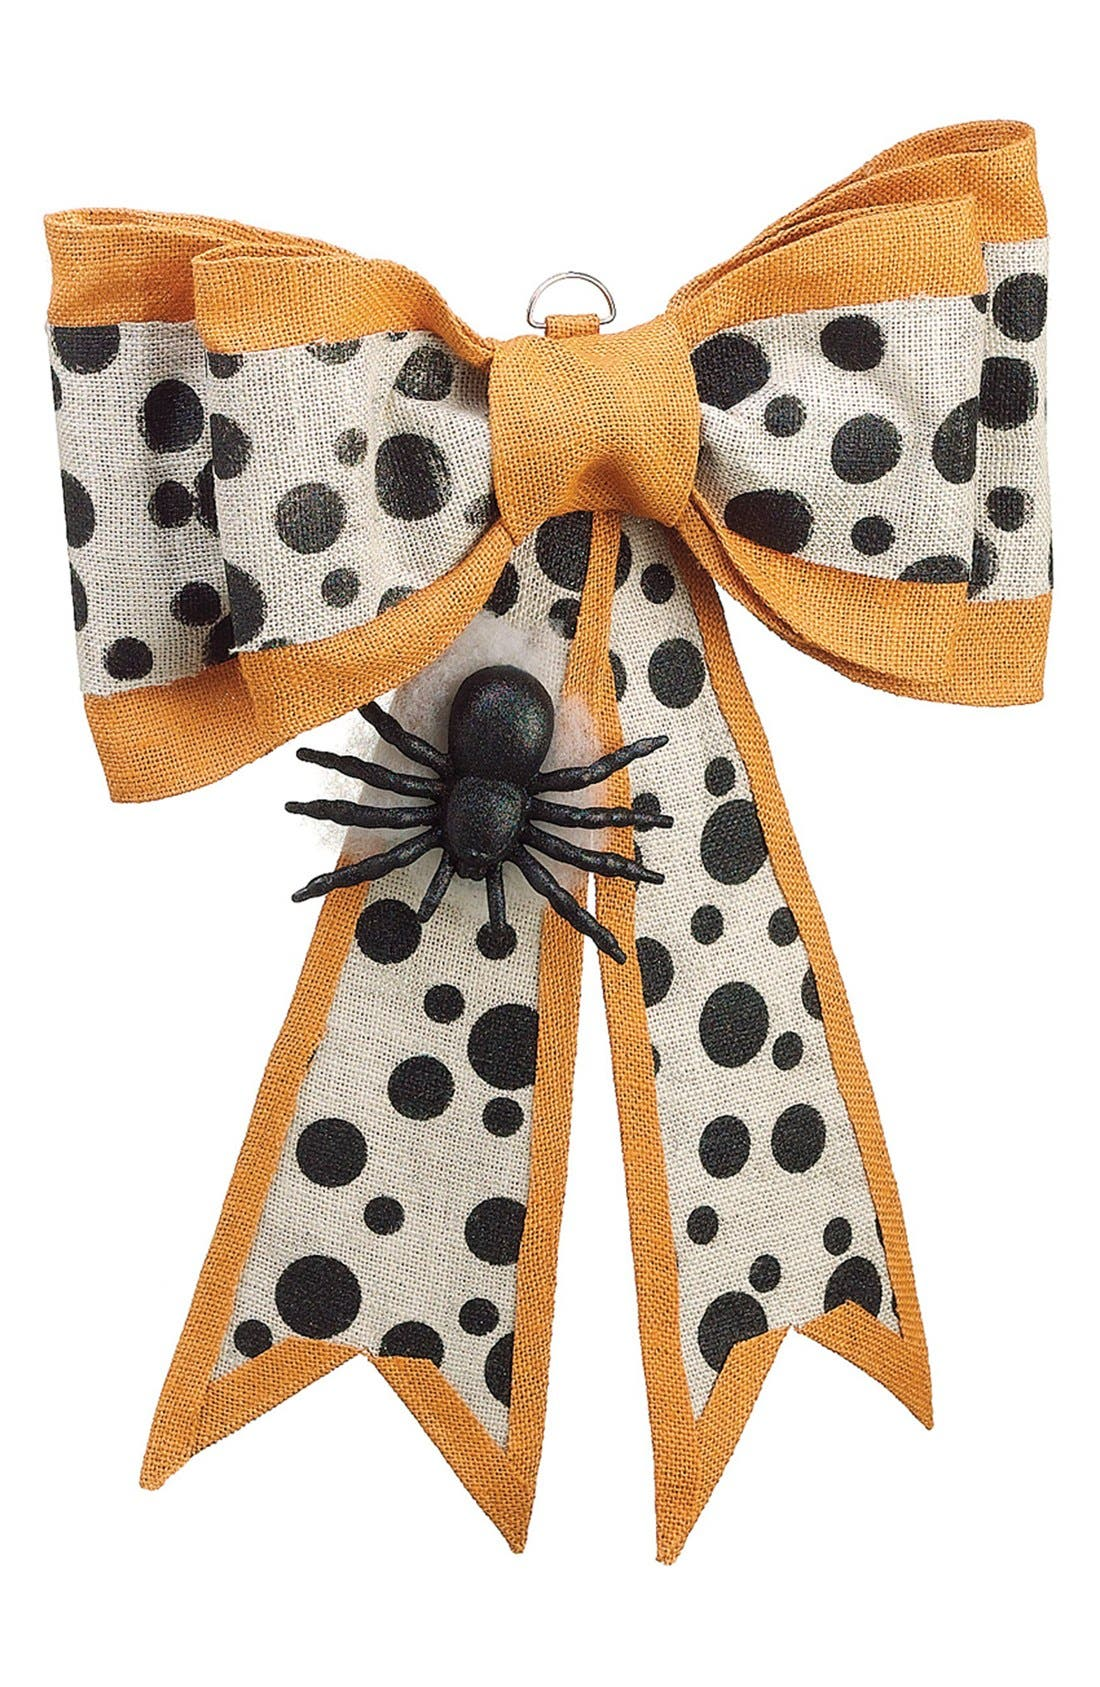 Main Image - ALLSTATE Hanging Bow Tie with Spider